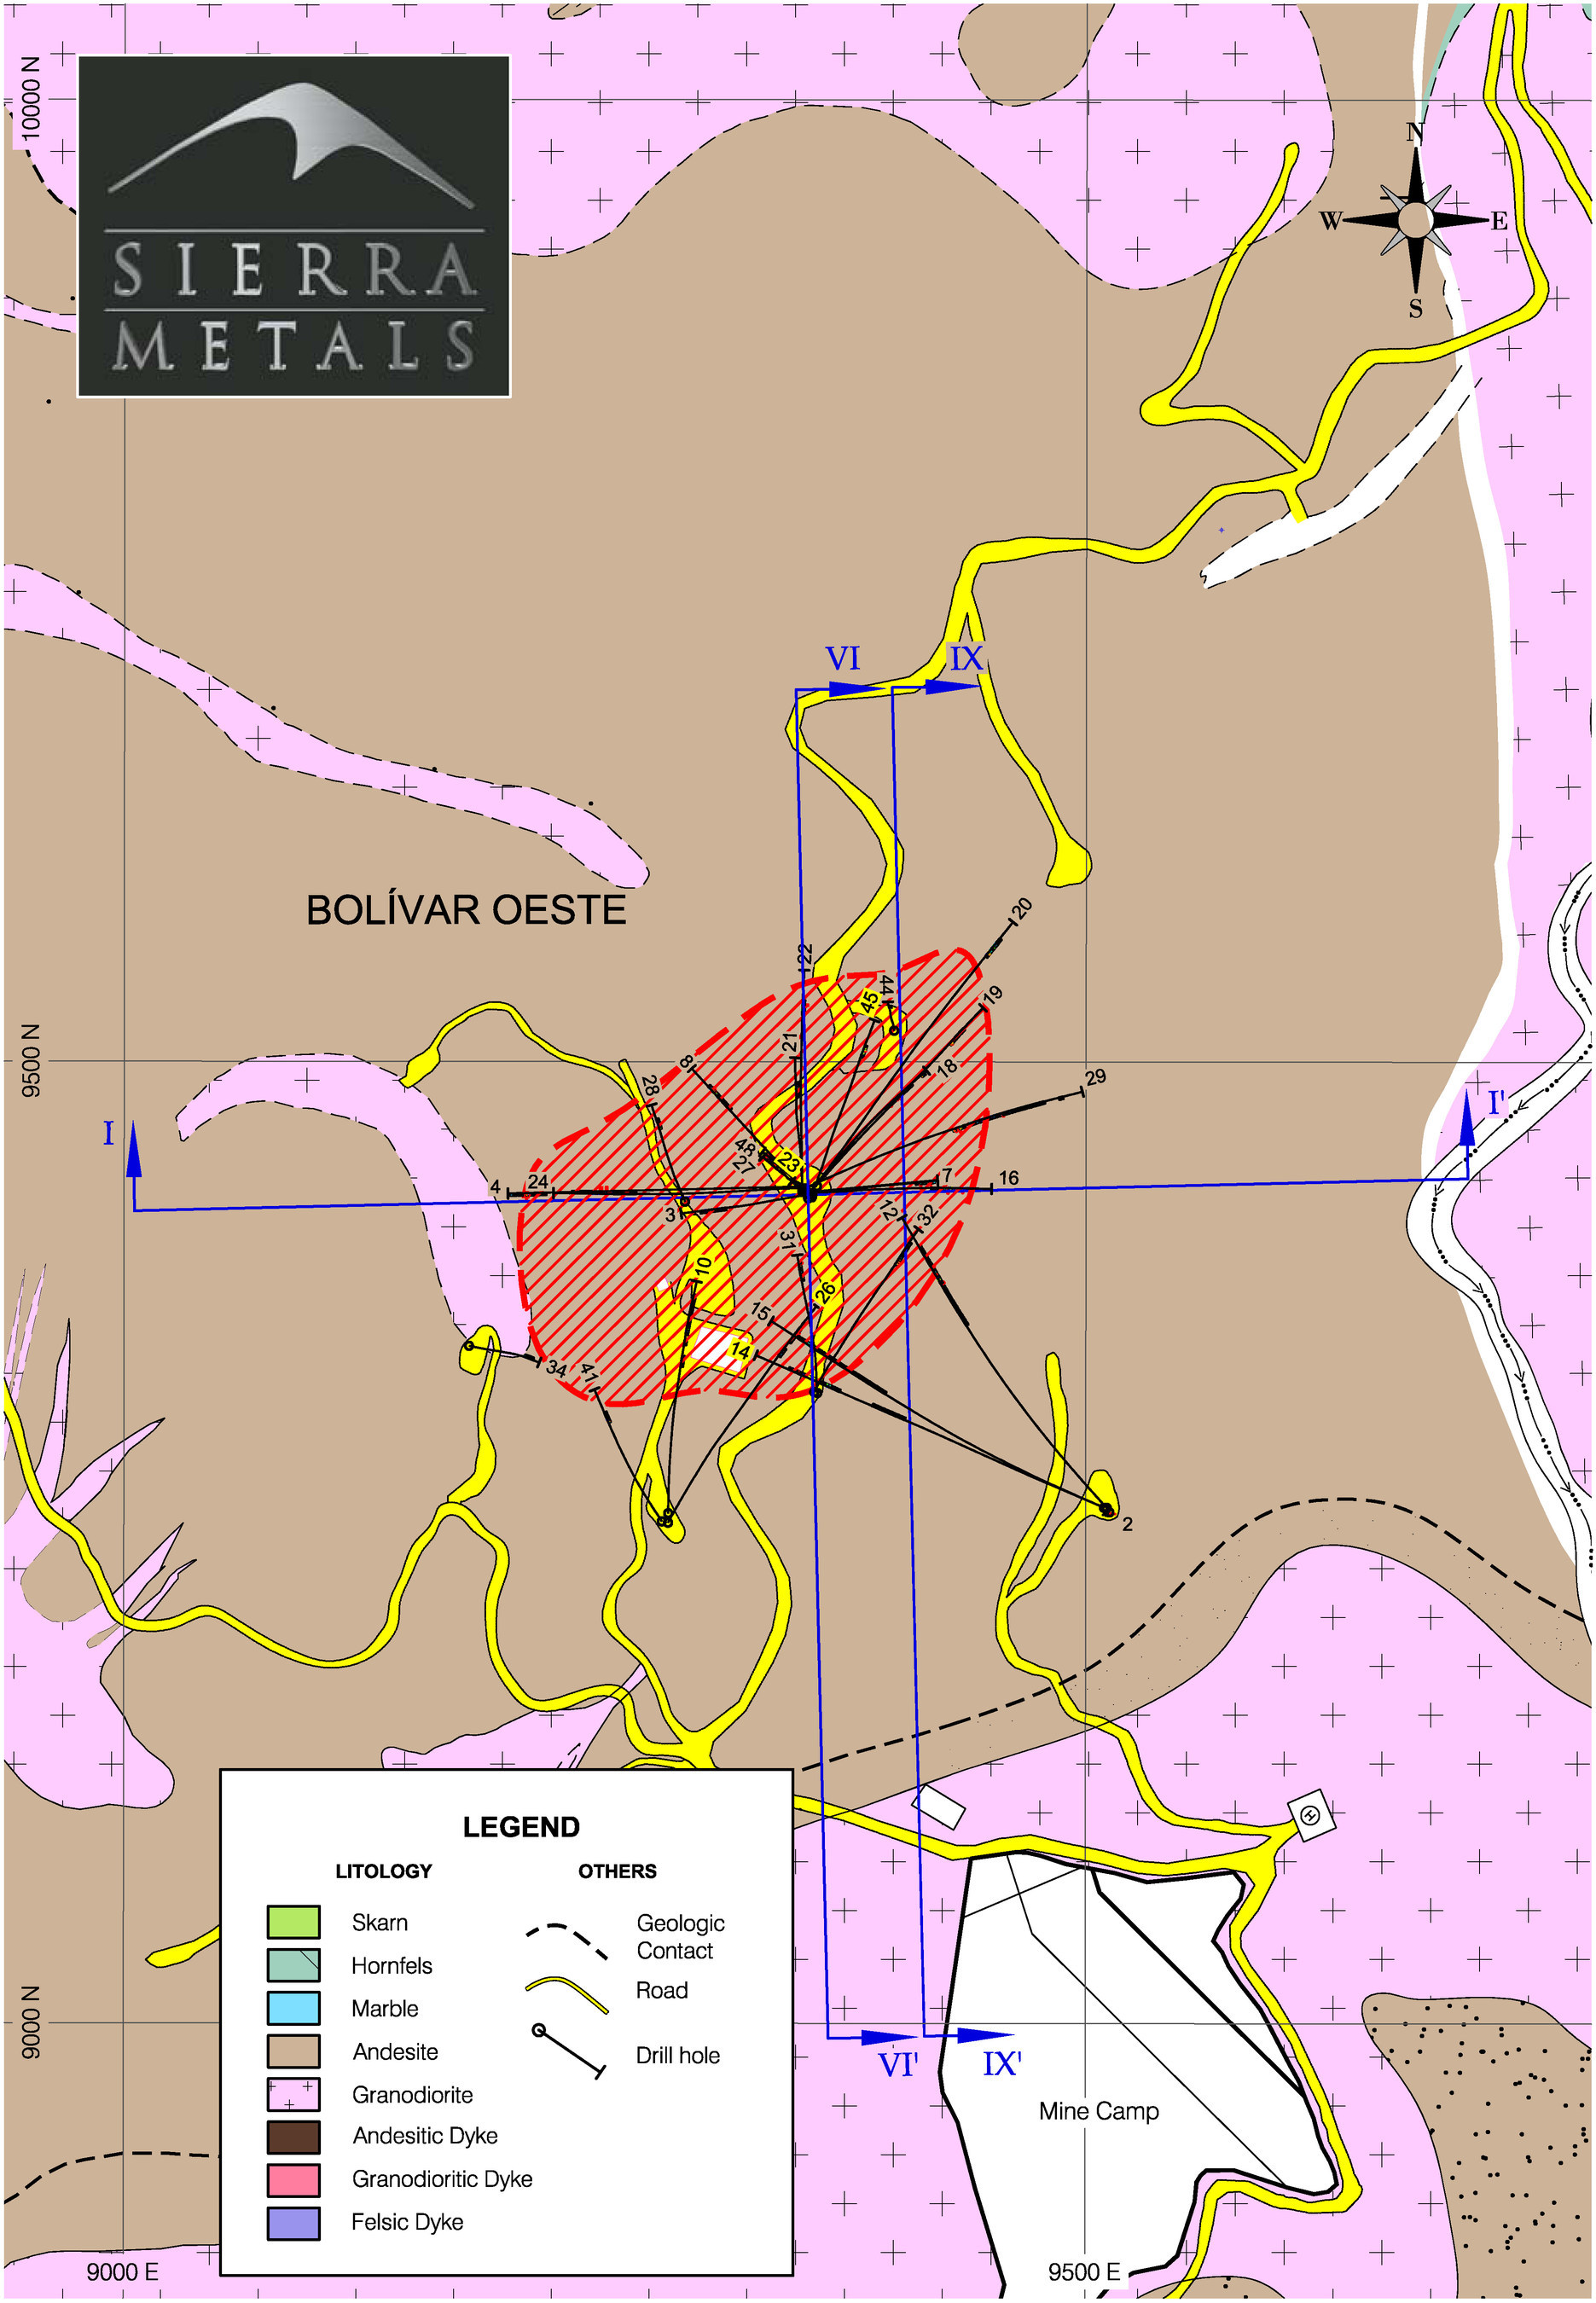 Figure 2. – Drilling Map (CNW Group/Sierra Metals Inc.)